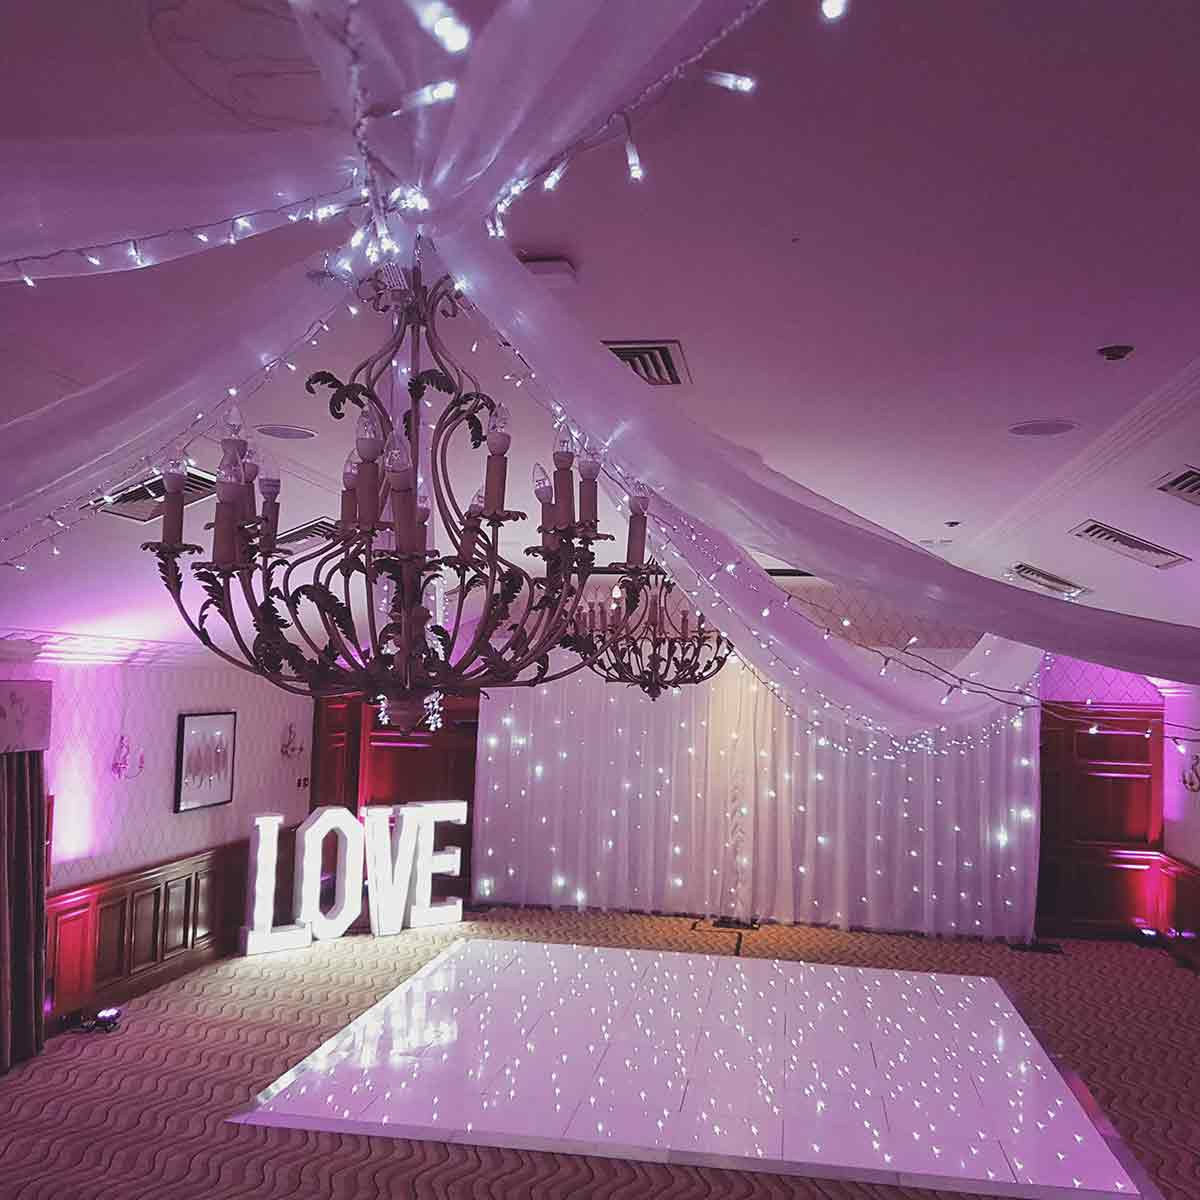 Wedding Backdrops London and Surrey white drapery & illuminated letters